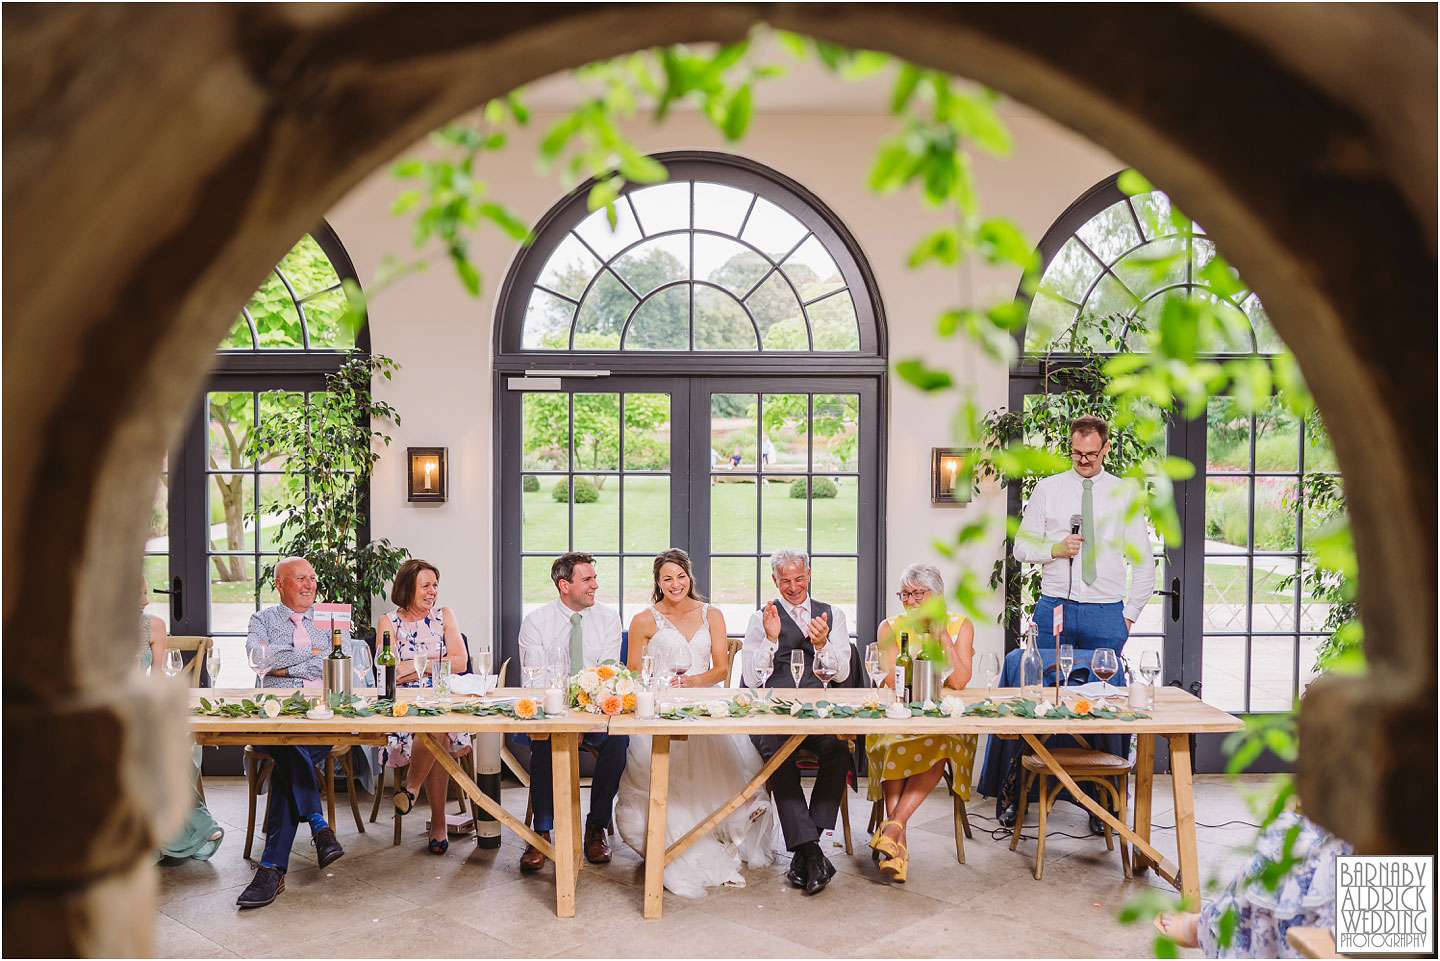 Wedding speeches at the Fig House Walled Garden at Middleton Lodge, Fig House Walled Garden Middleton Lodge Wedding Photos, Fig House Middleton Lodge Richmond, Middleton Lodge wedding photographer, Middleton Lodge Wedding Photography, Yorkshire Wedding Photographer Barnaby Aldrick